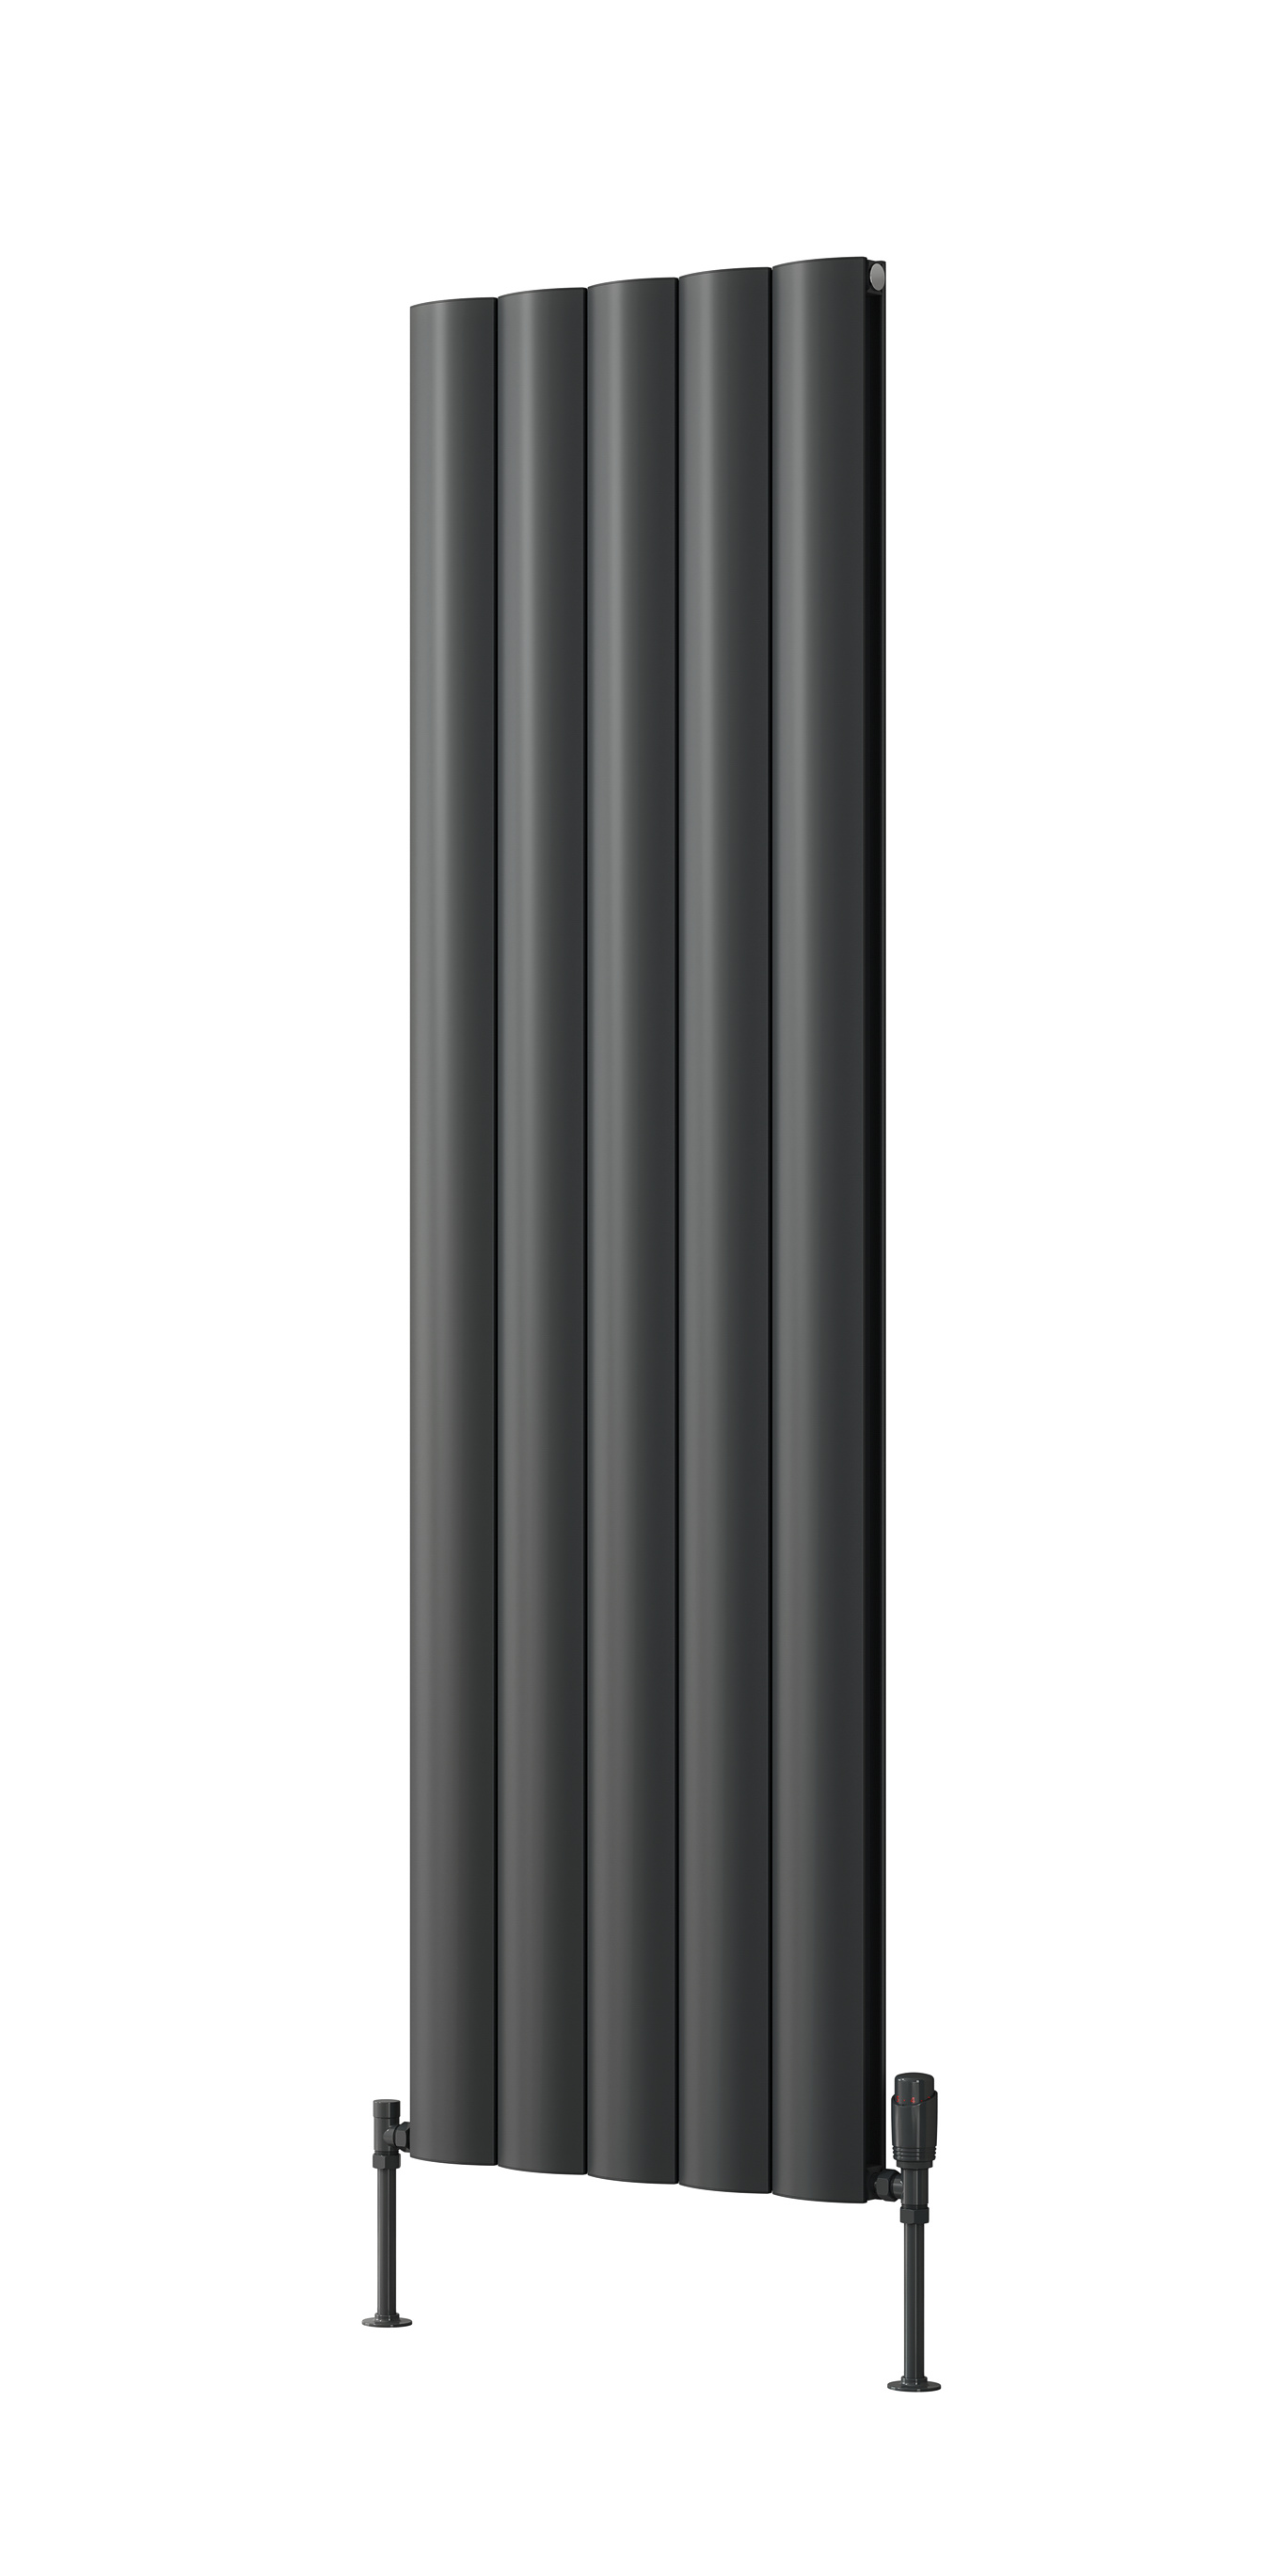 Reina Belva Double Vertical 1800 x 308 Designer Aluminium Contemporary Panelled Radiator